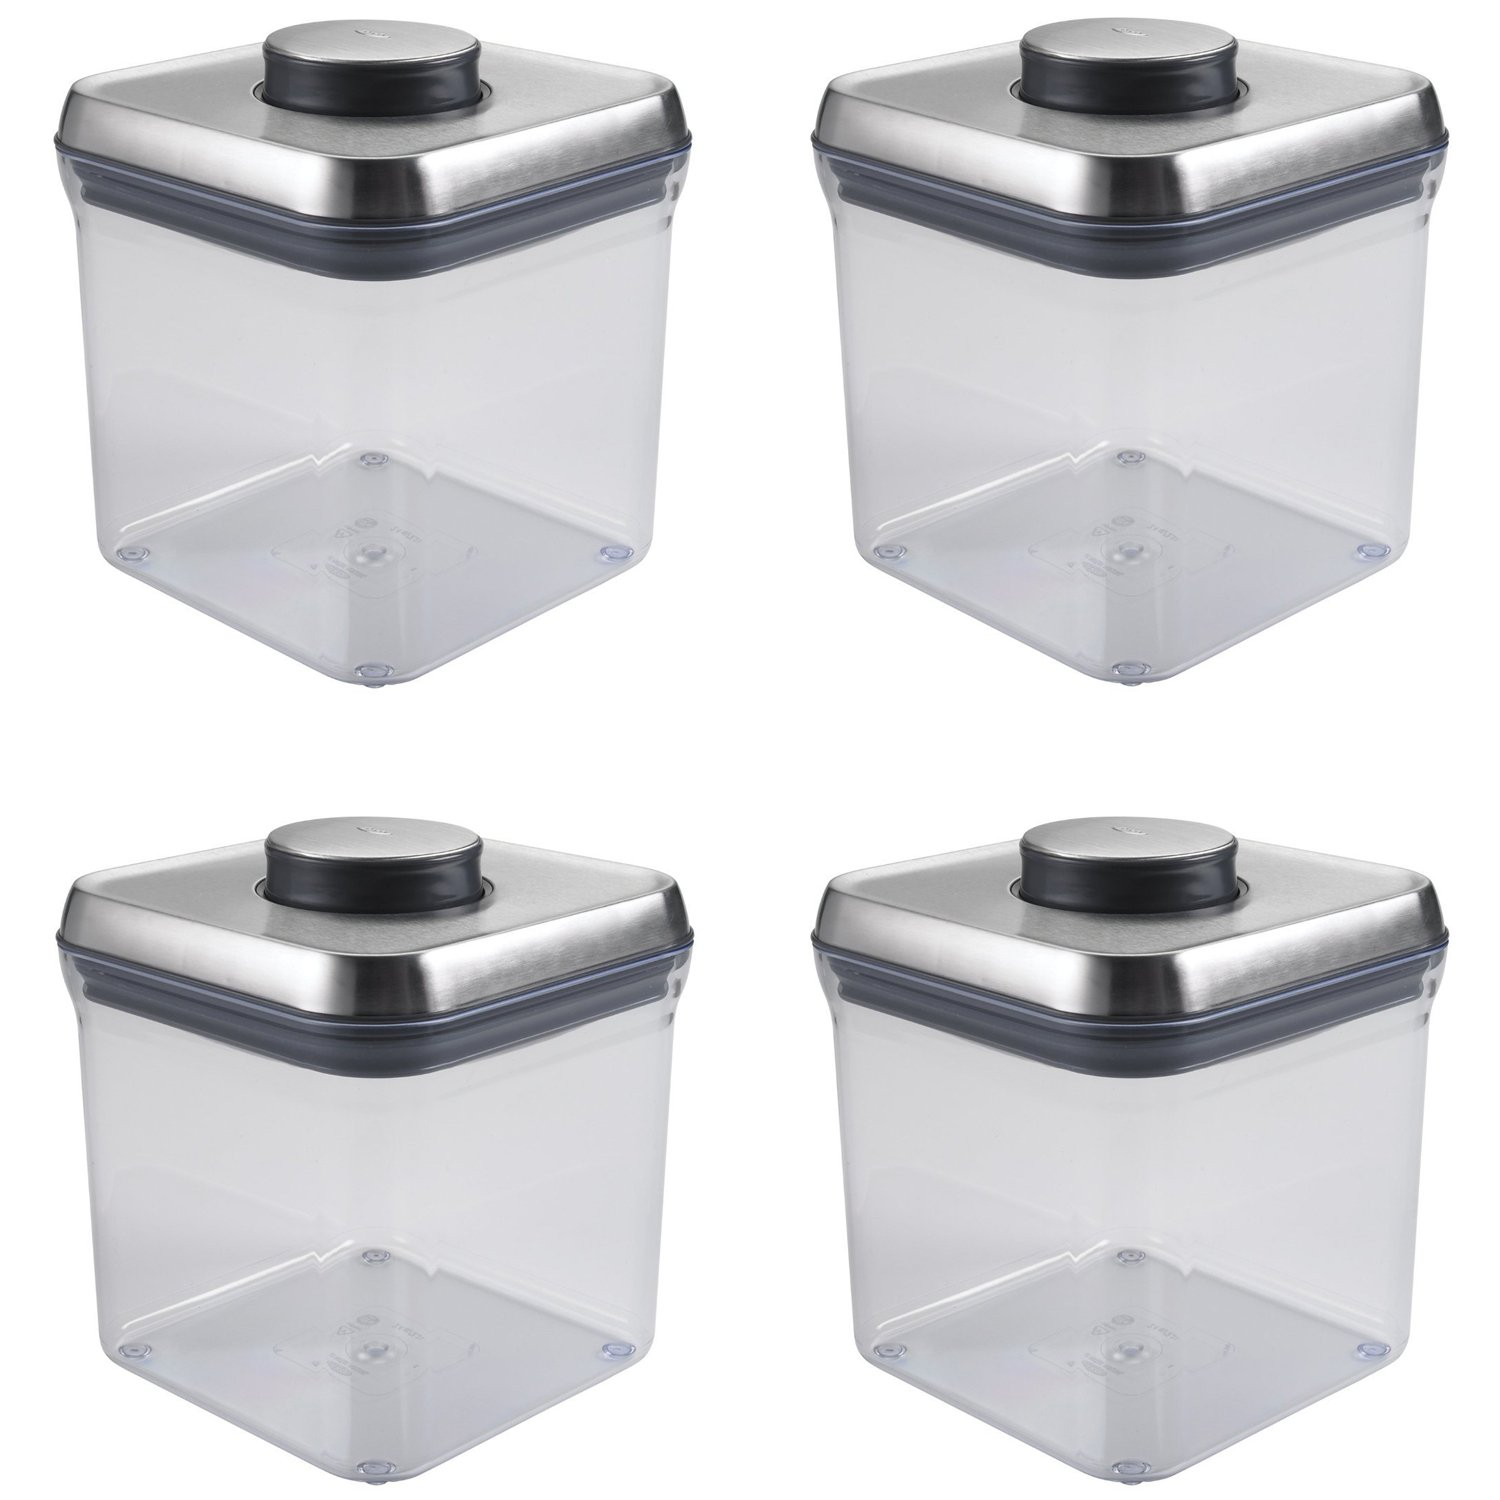 OXO SteeL POP 2.4-Quart Square Container (Set of 4) by OXO